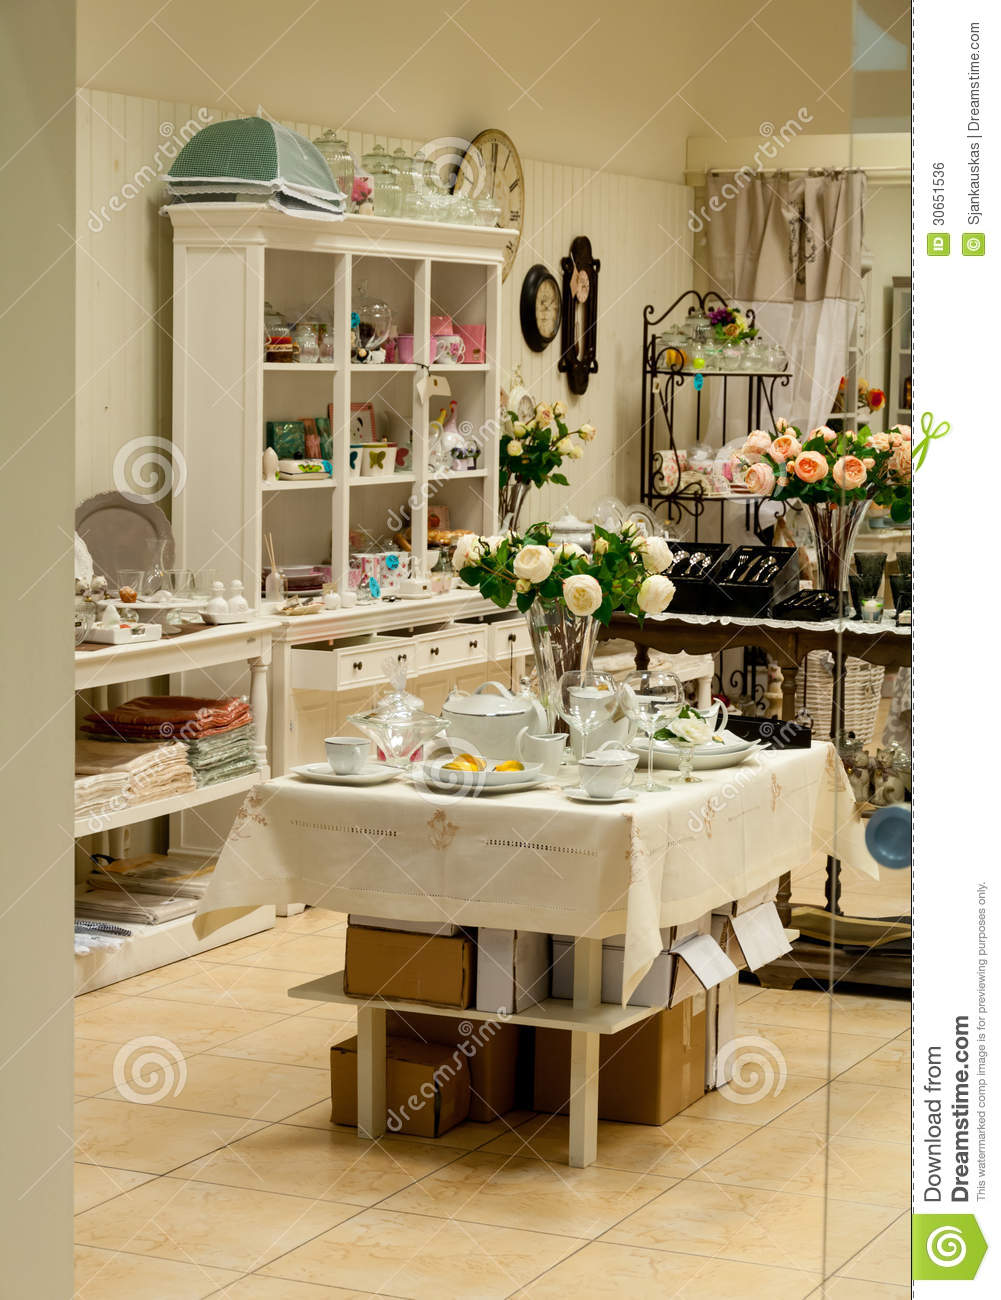 home and decor outlet home decor and dishes shop royalty free stock image 10909